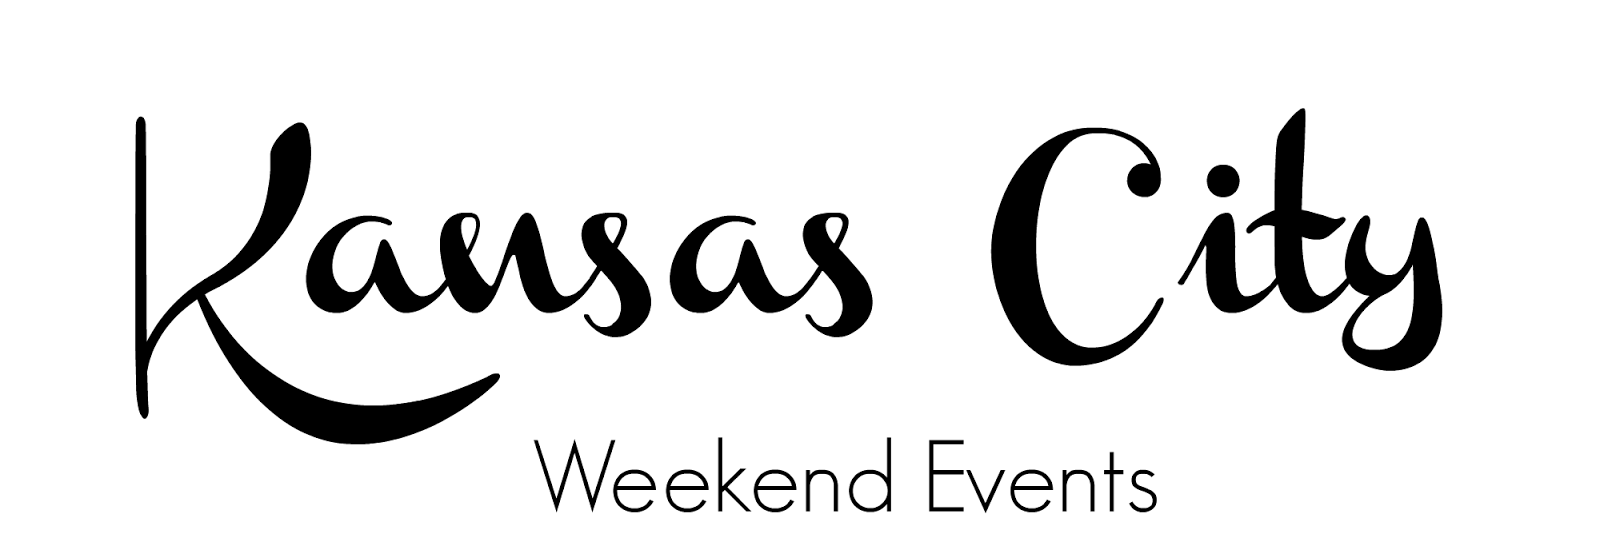 Kansas City Weekend Events